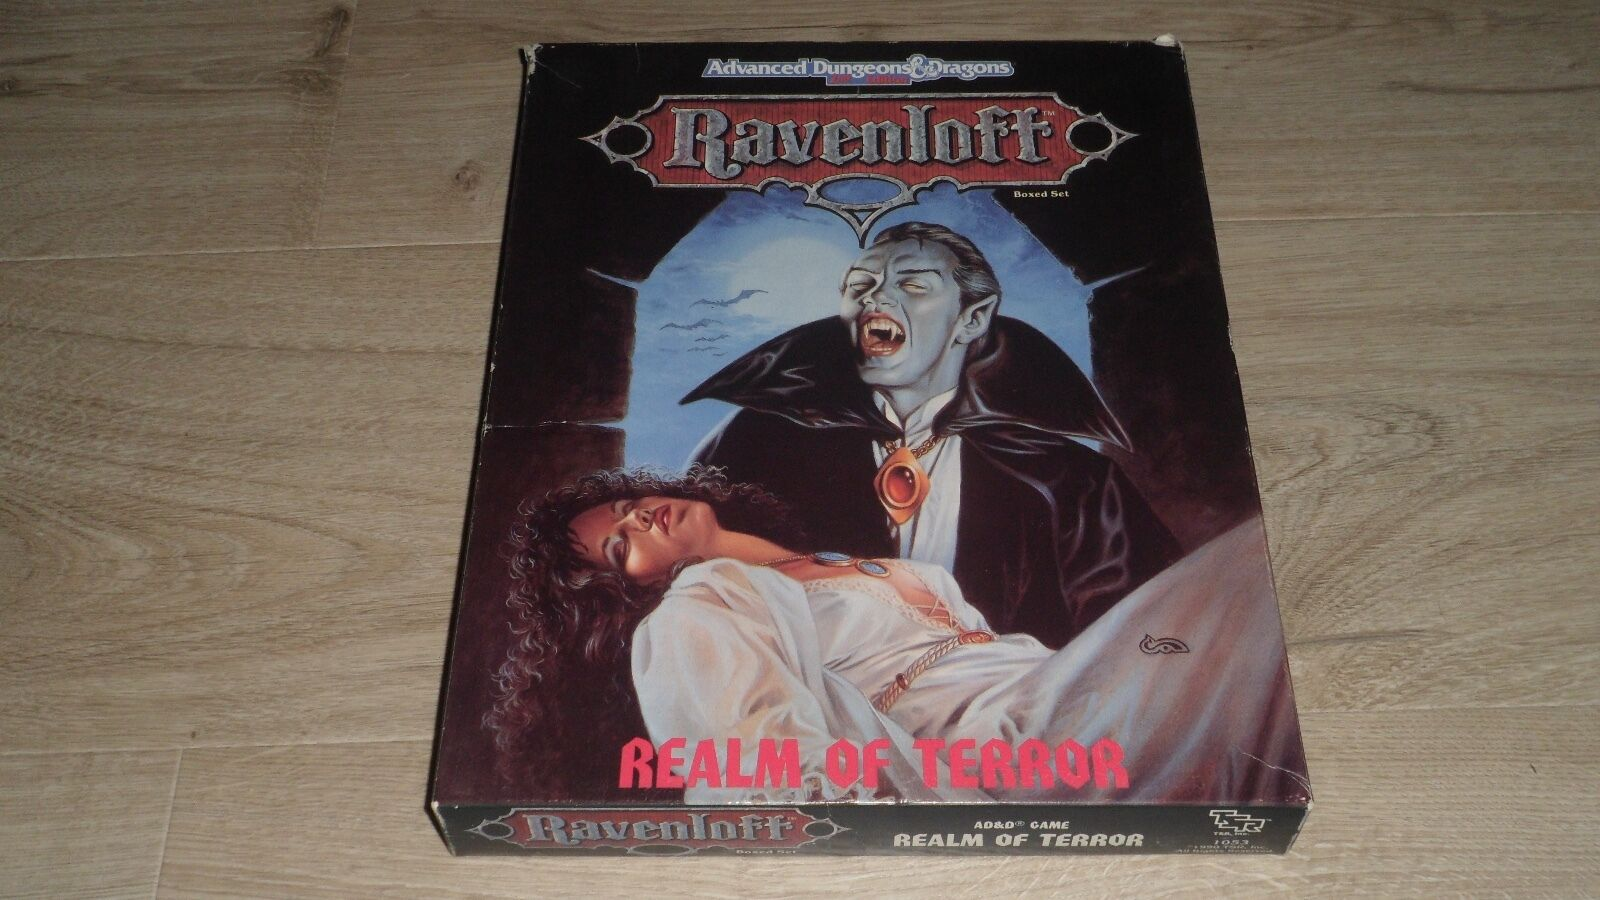 AD&D ADVANCED DUNGEONS AND DRAGONS - RAVENLOFF - REALM OF TERROR 1053